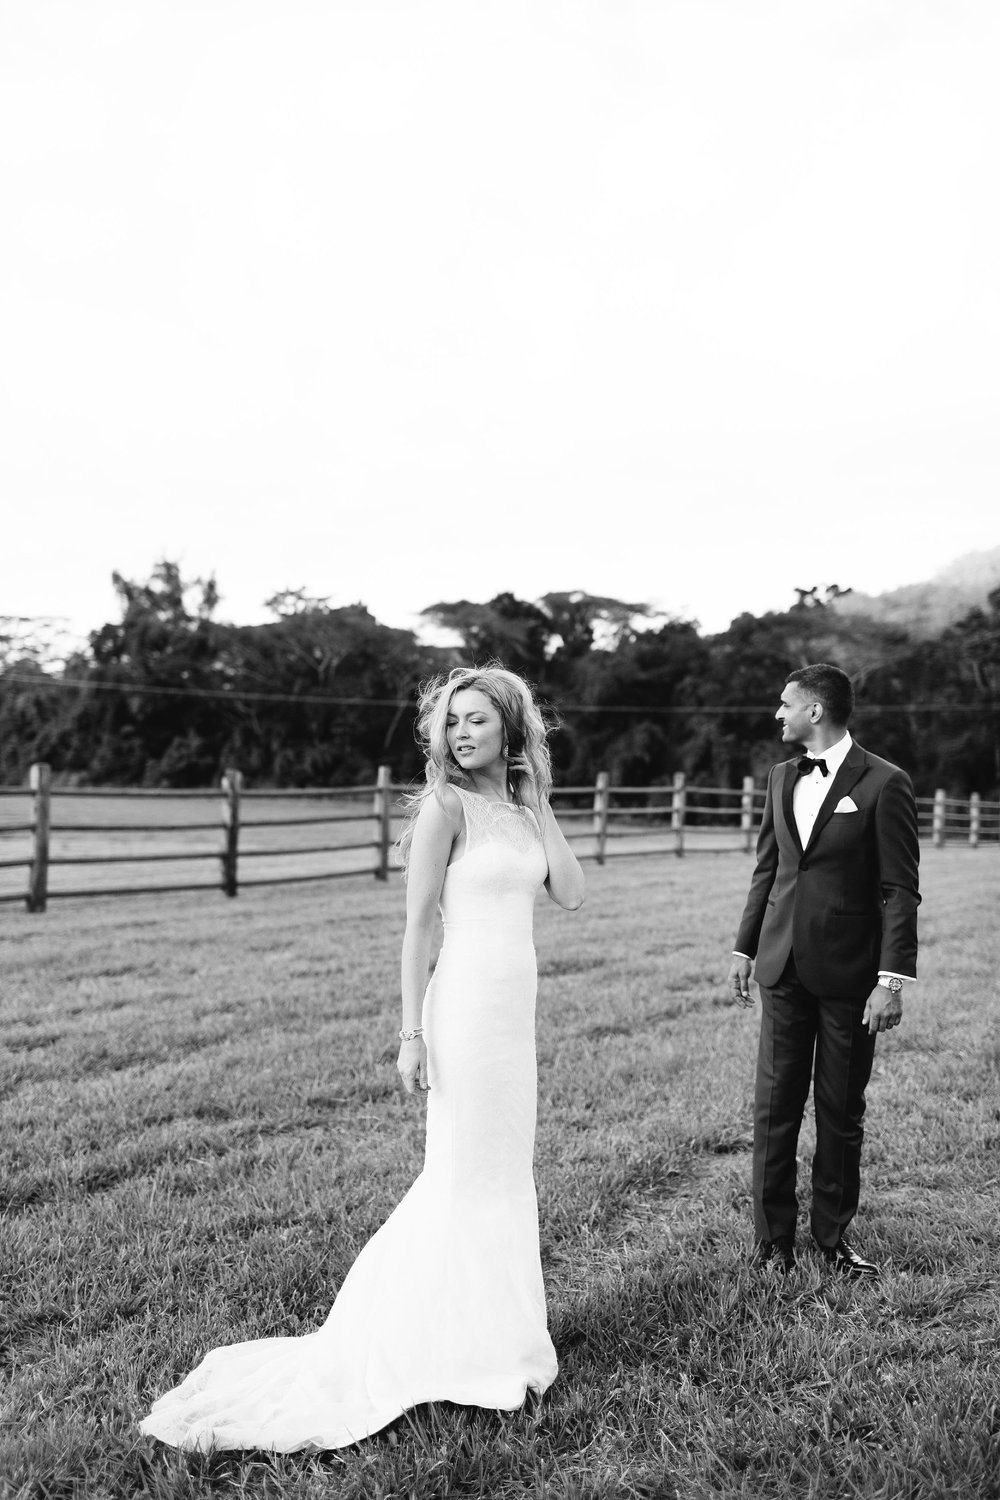 wedding_photography_port_douglas_0145-min.jpg